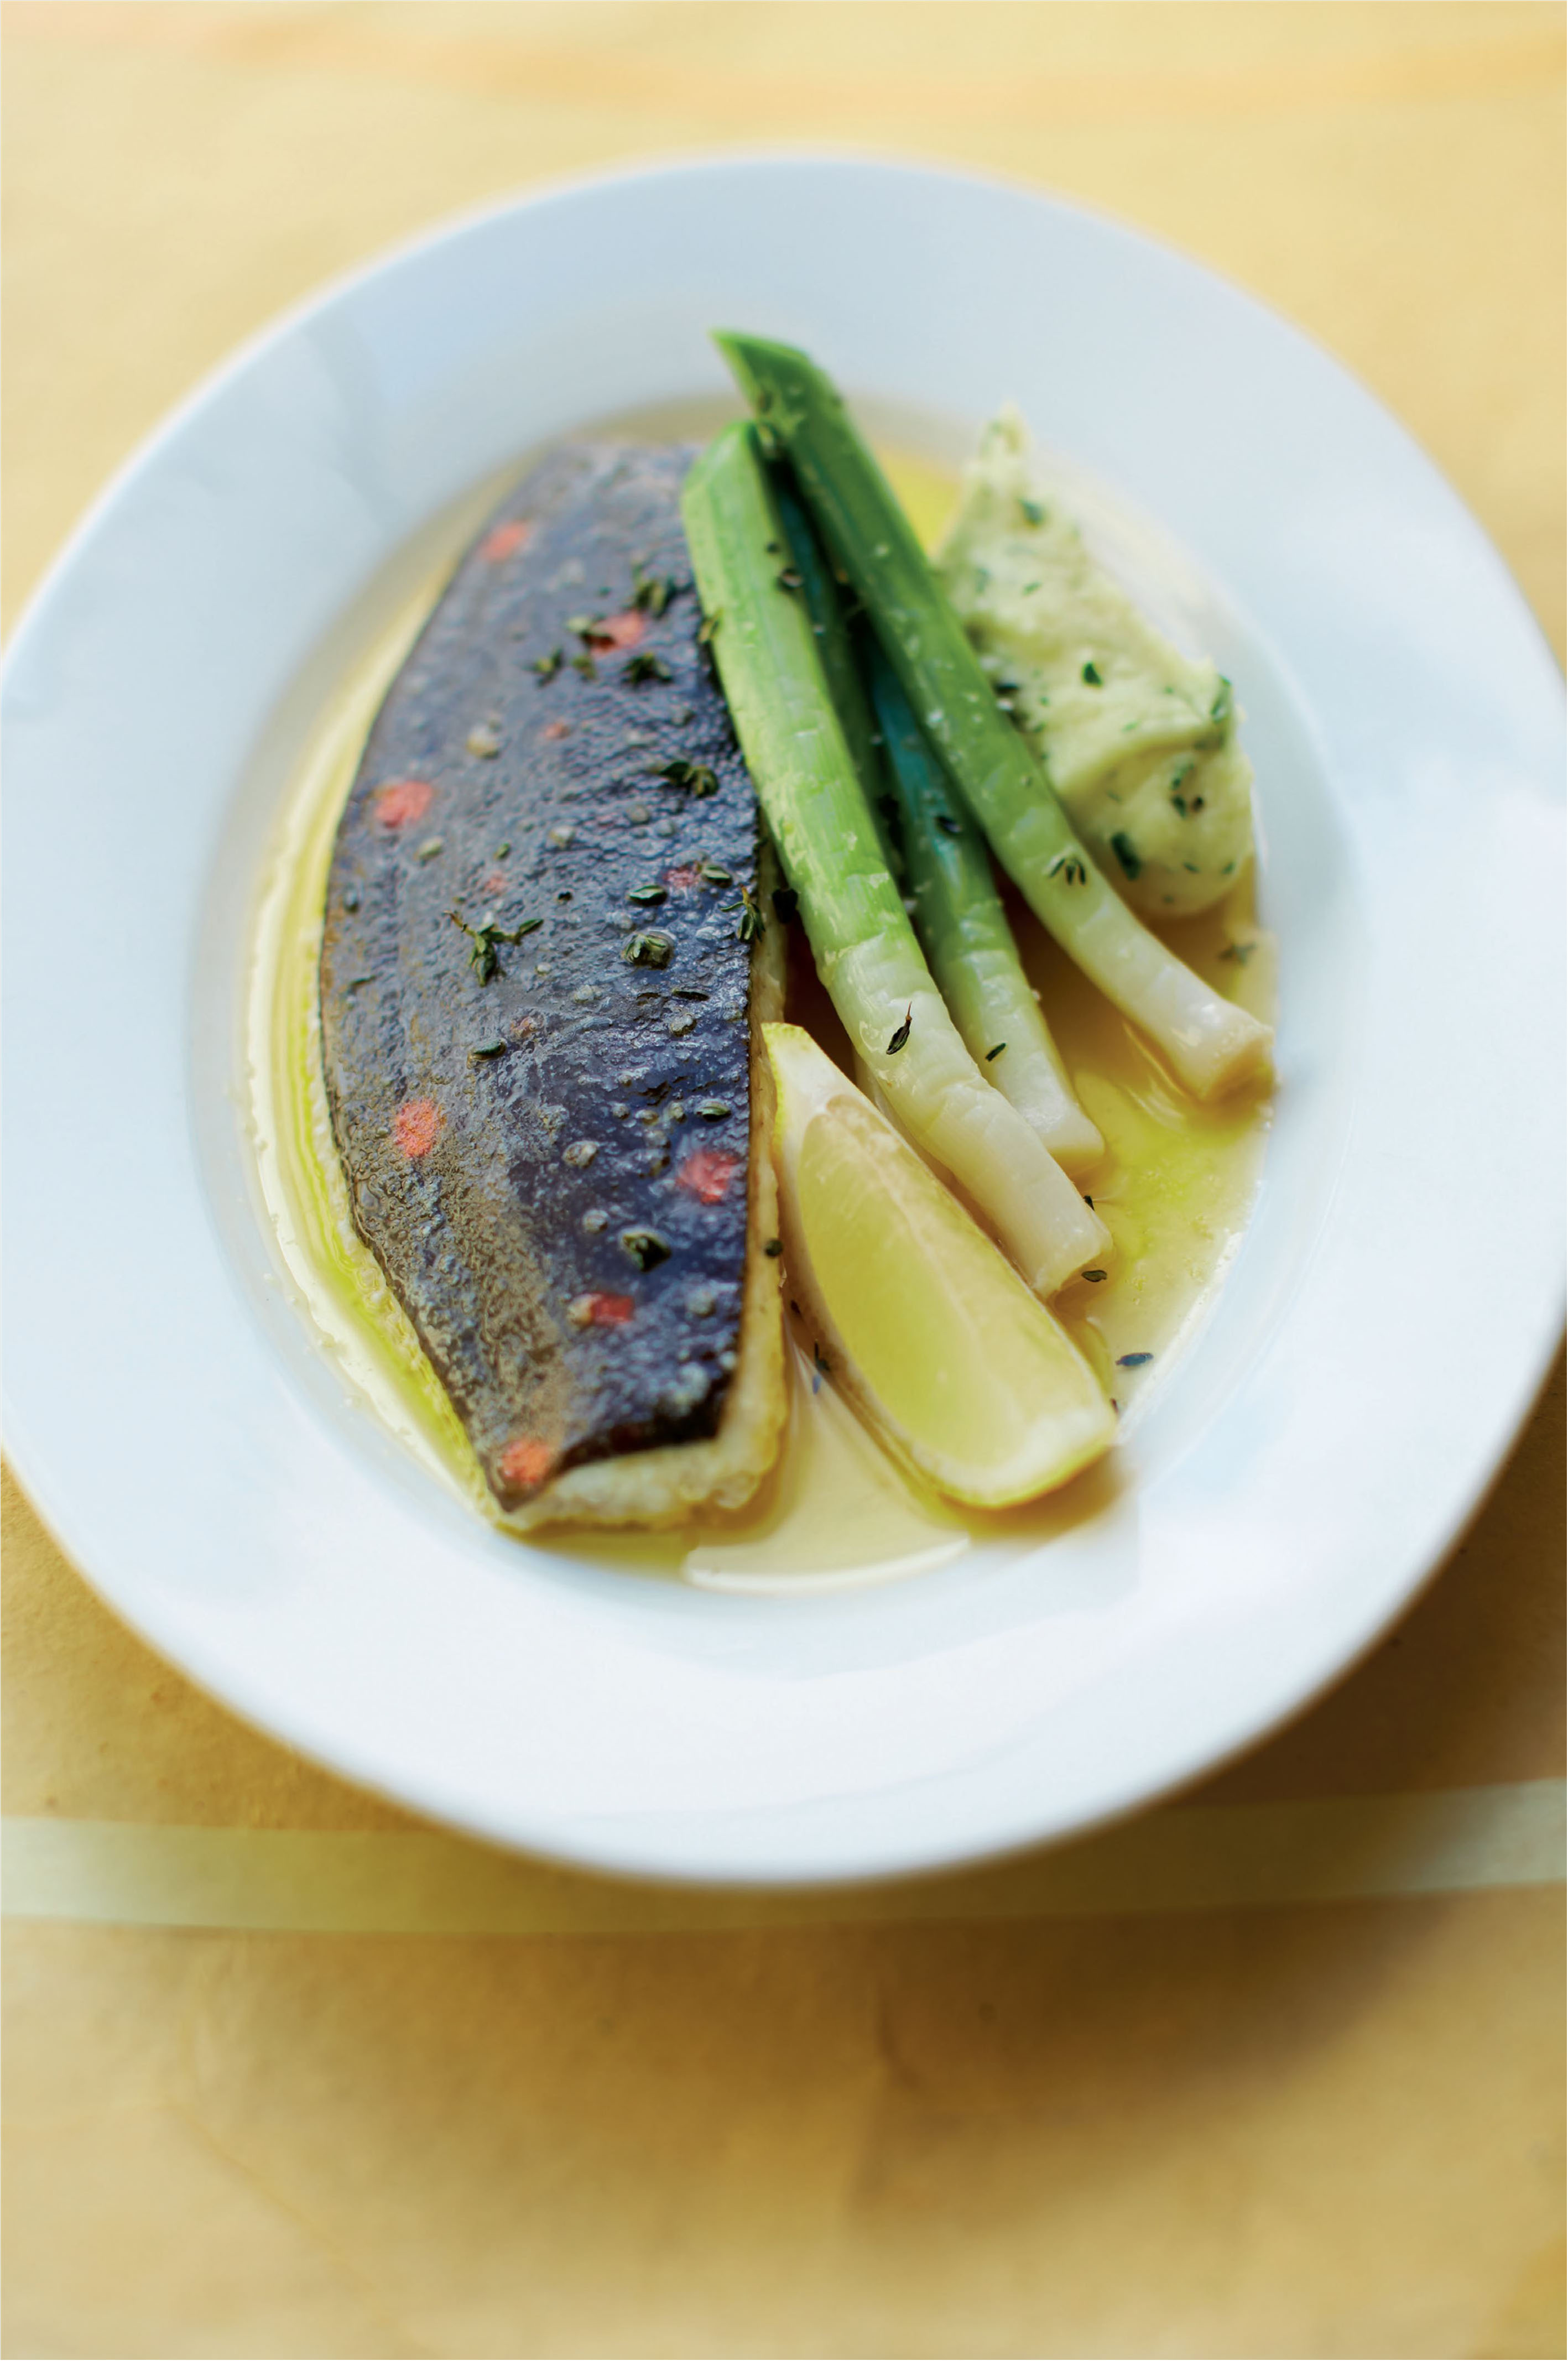 Plaice poached in butter with leeks, and parsley and mustard mash